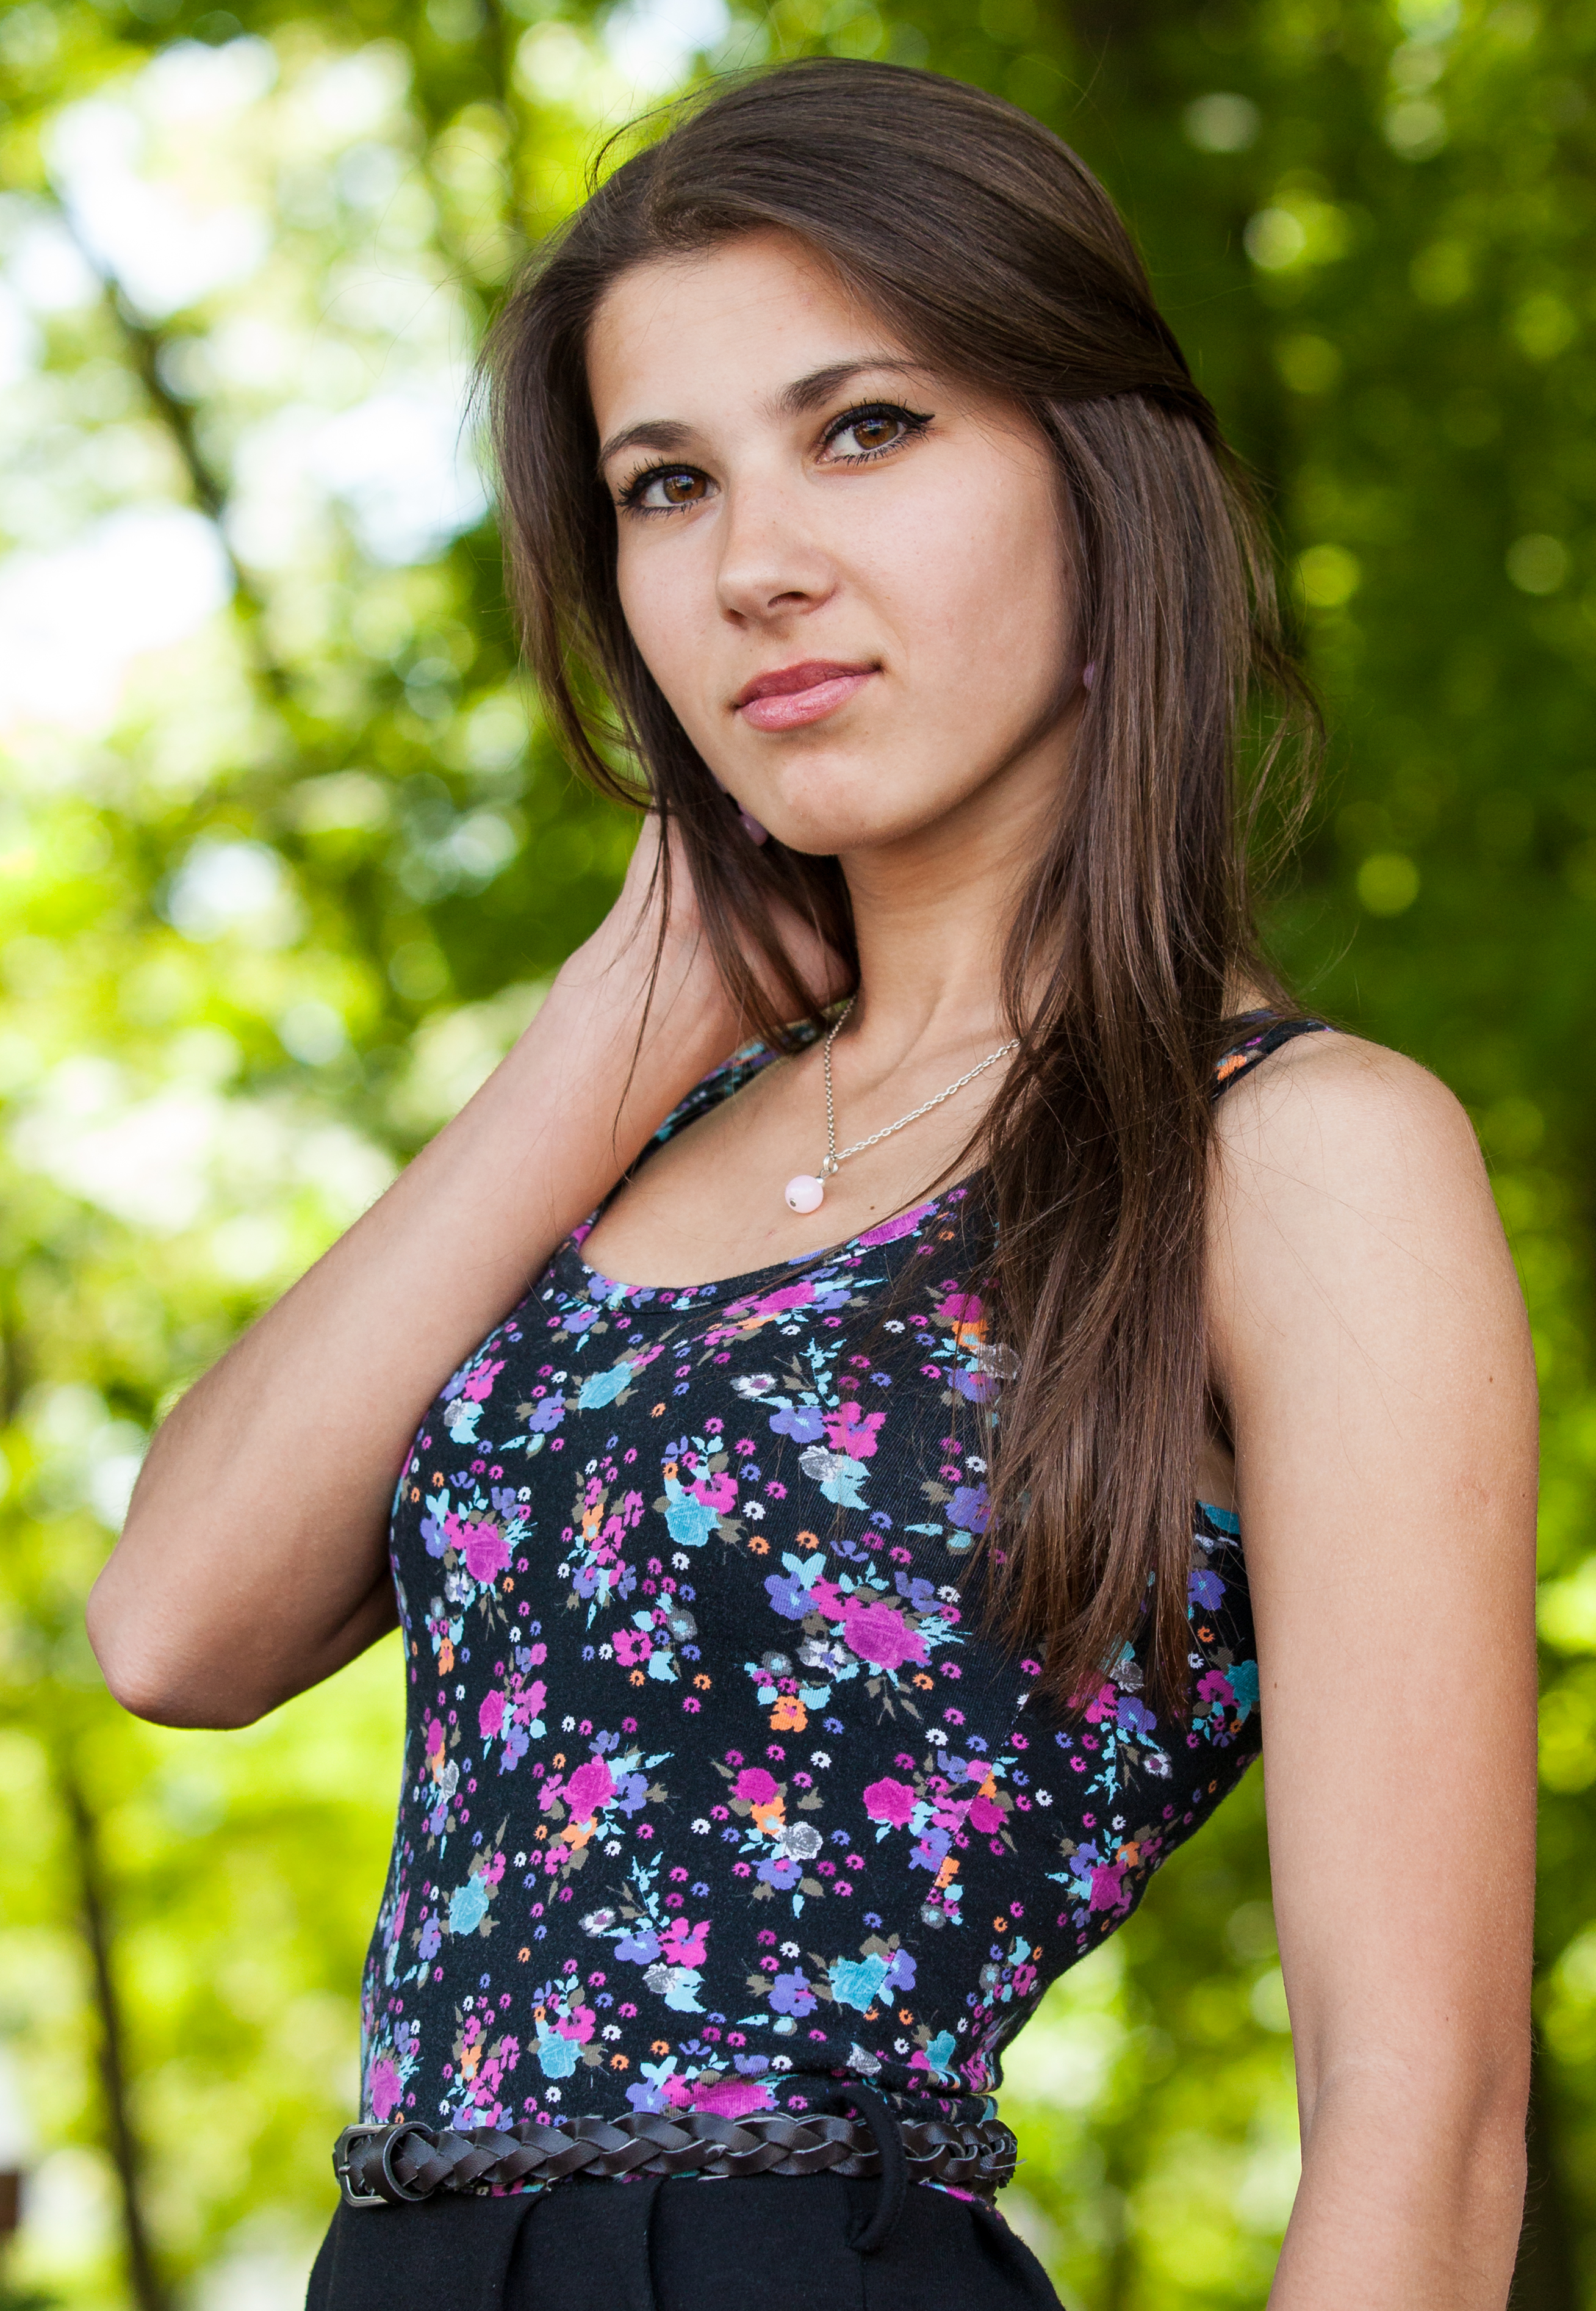 an amazingly beautiful Roman-Catholic girl photographed in May 2014, picture 8/25